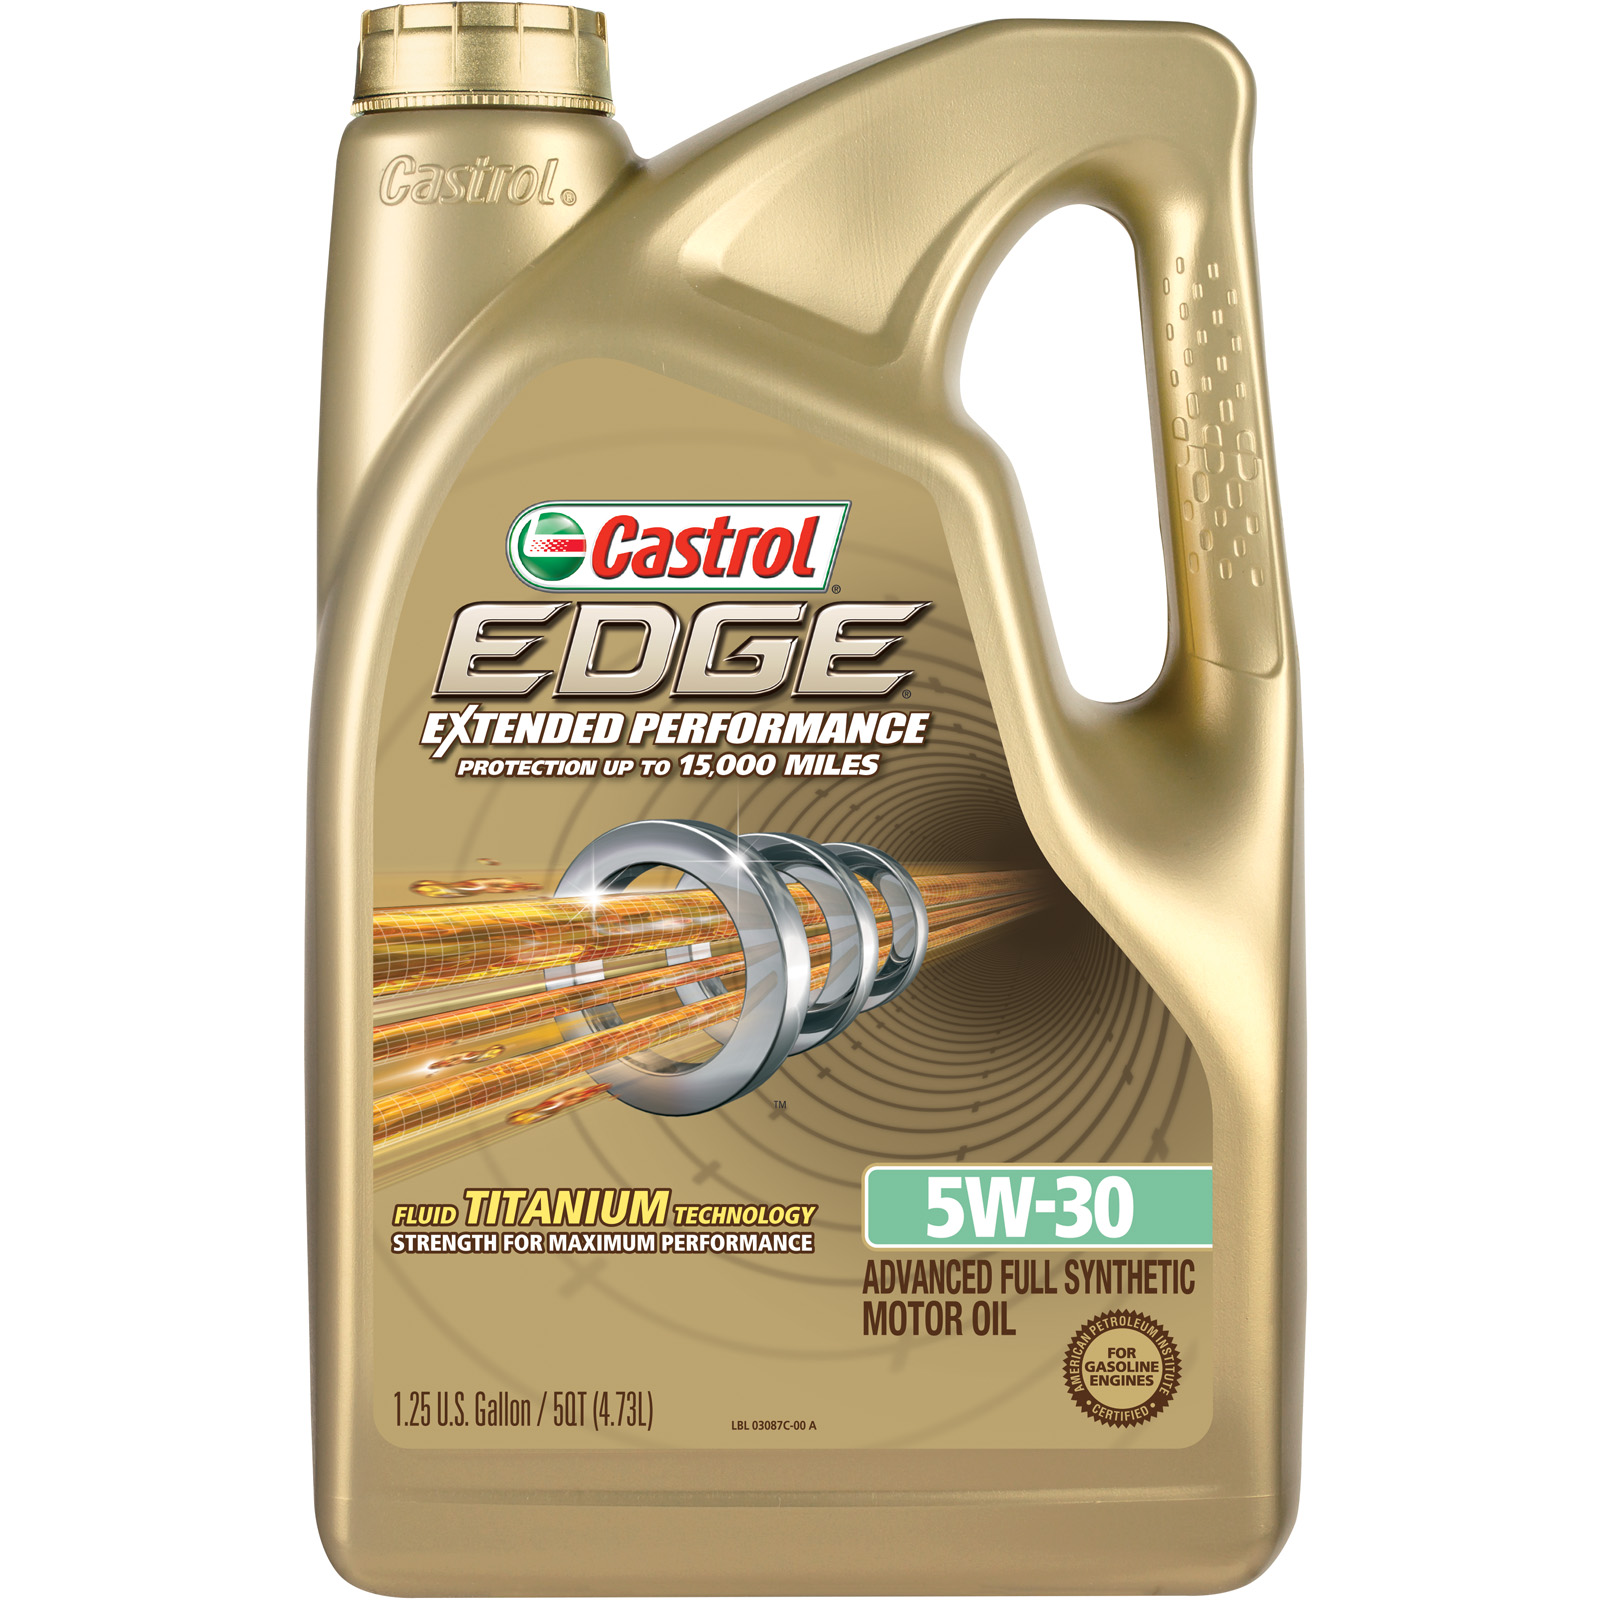 Castrol EDGE Extended Performance 5W-30 Full Synthetic Motor Oil, 5 QT by Castrol Edge Extended Performance